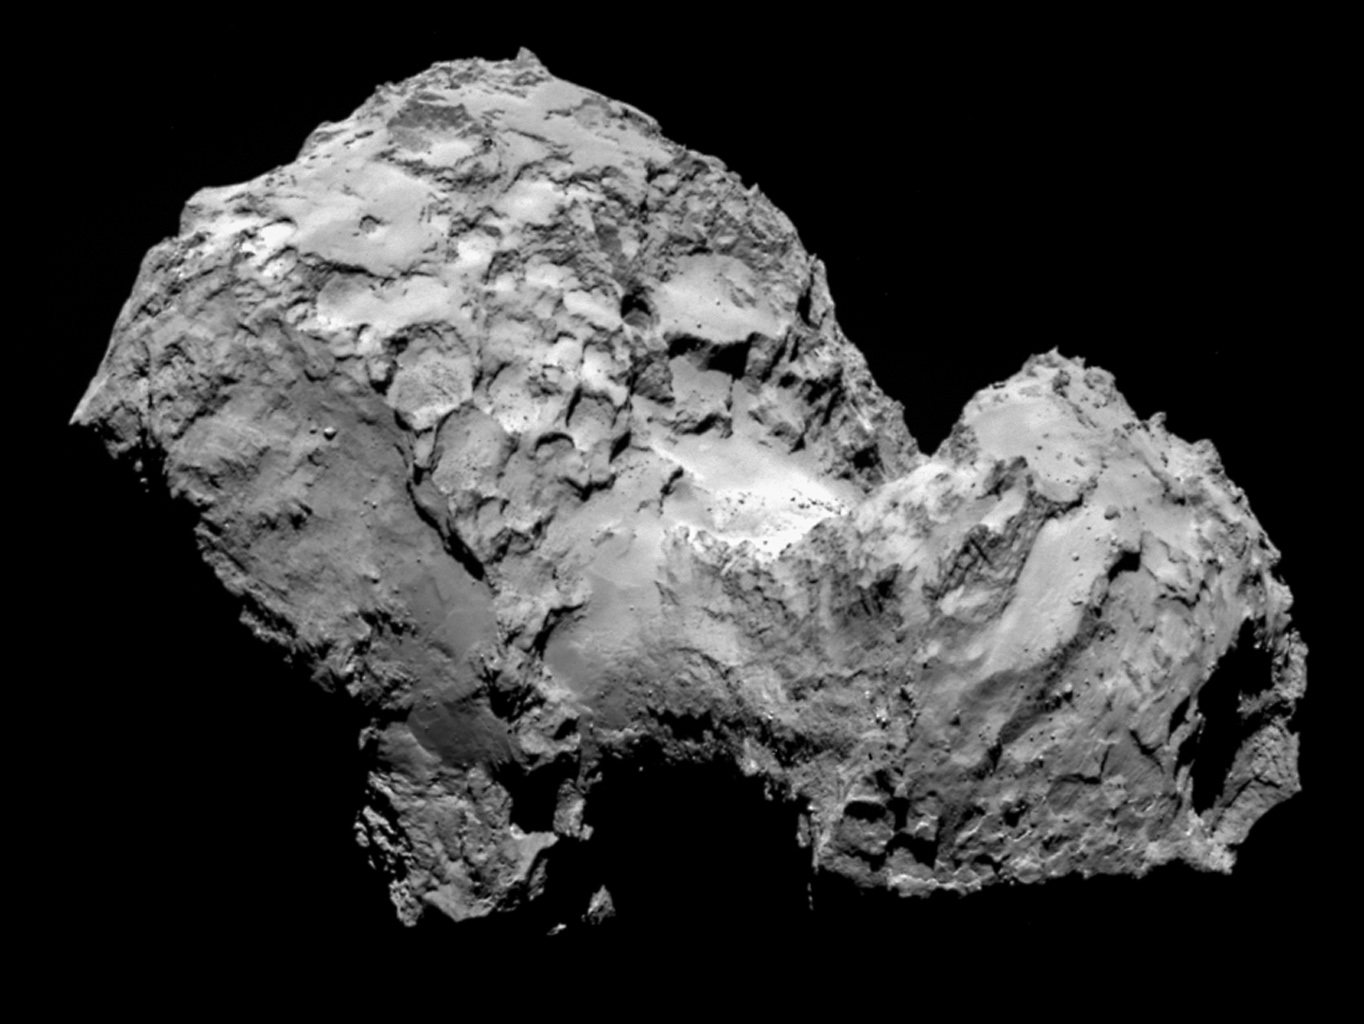 Comet 67P/Churyumov-Gerasimenko by ESA's Rosetta's OSIRIS narrow-angle camera on August 3, 2014, from a distance of 177 miles (285 kilometers). The image resolution is 17 feet (5.3 meters) per pixel.